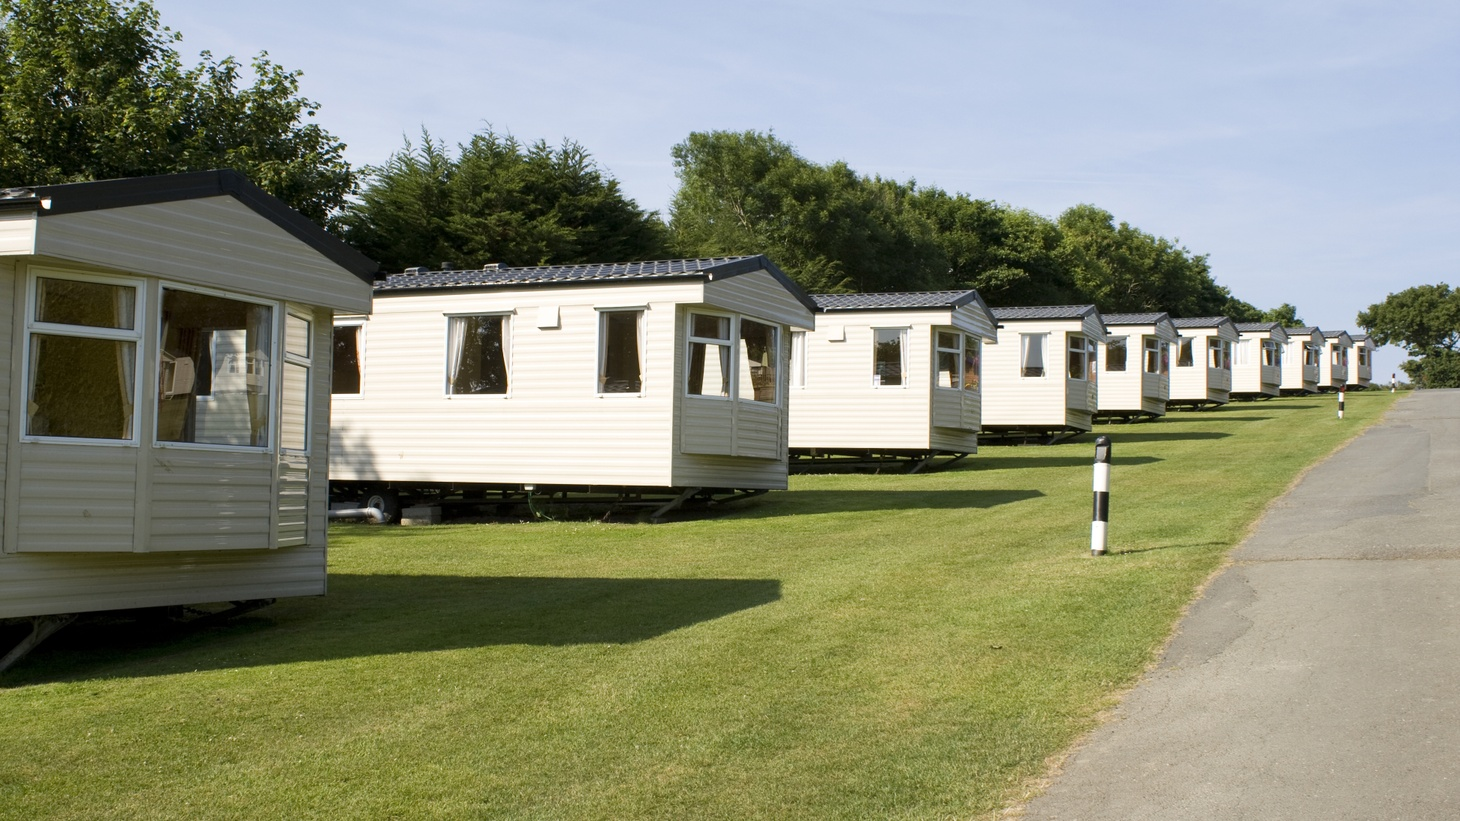 Some top investment firms like the Carlyle Group, Blackstone and Apollo Global Management are spending billions buying trailer parks.